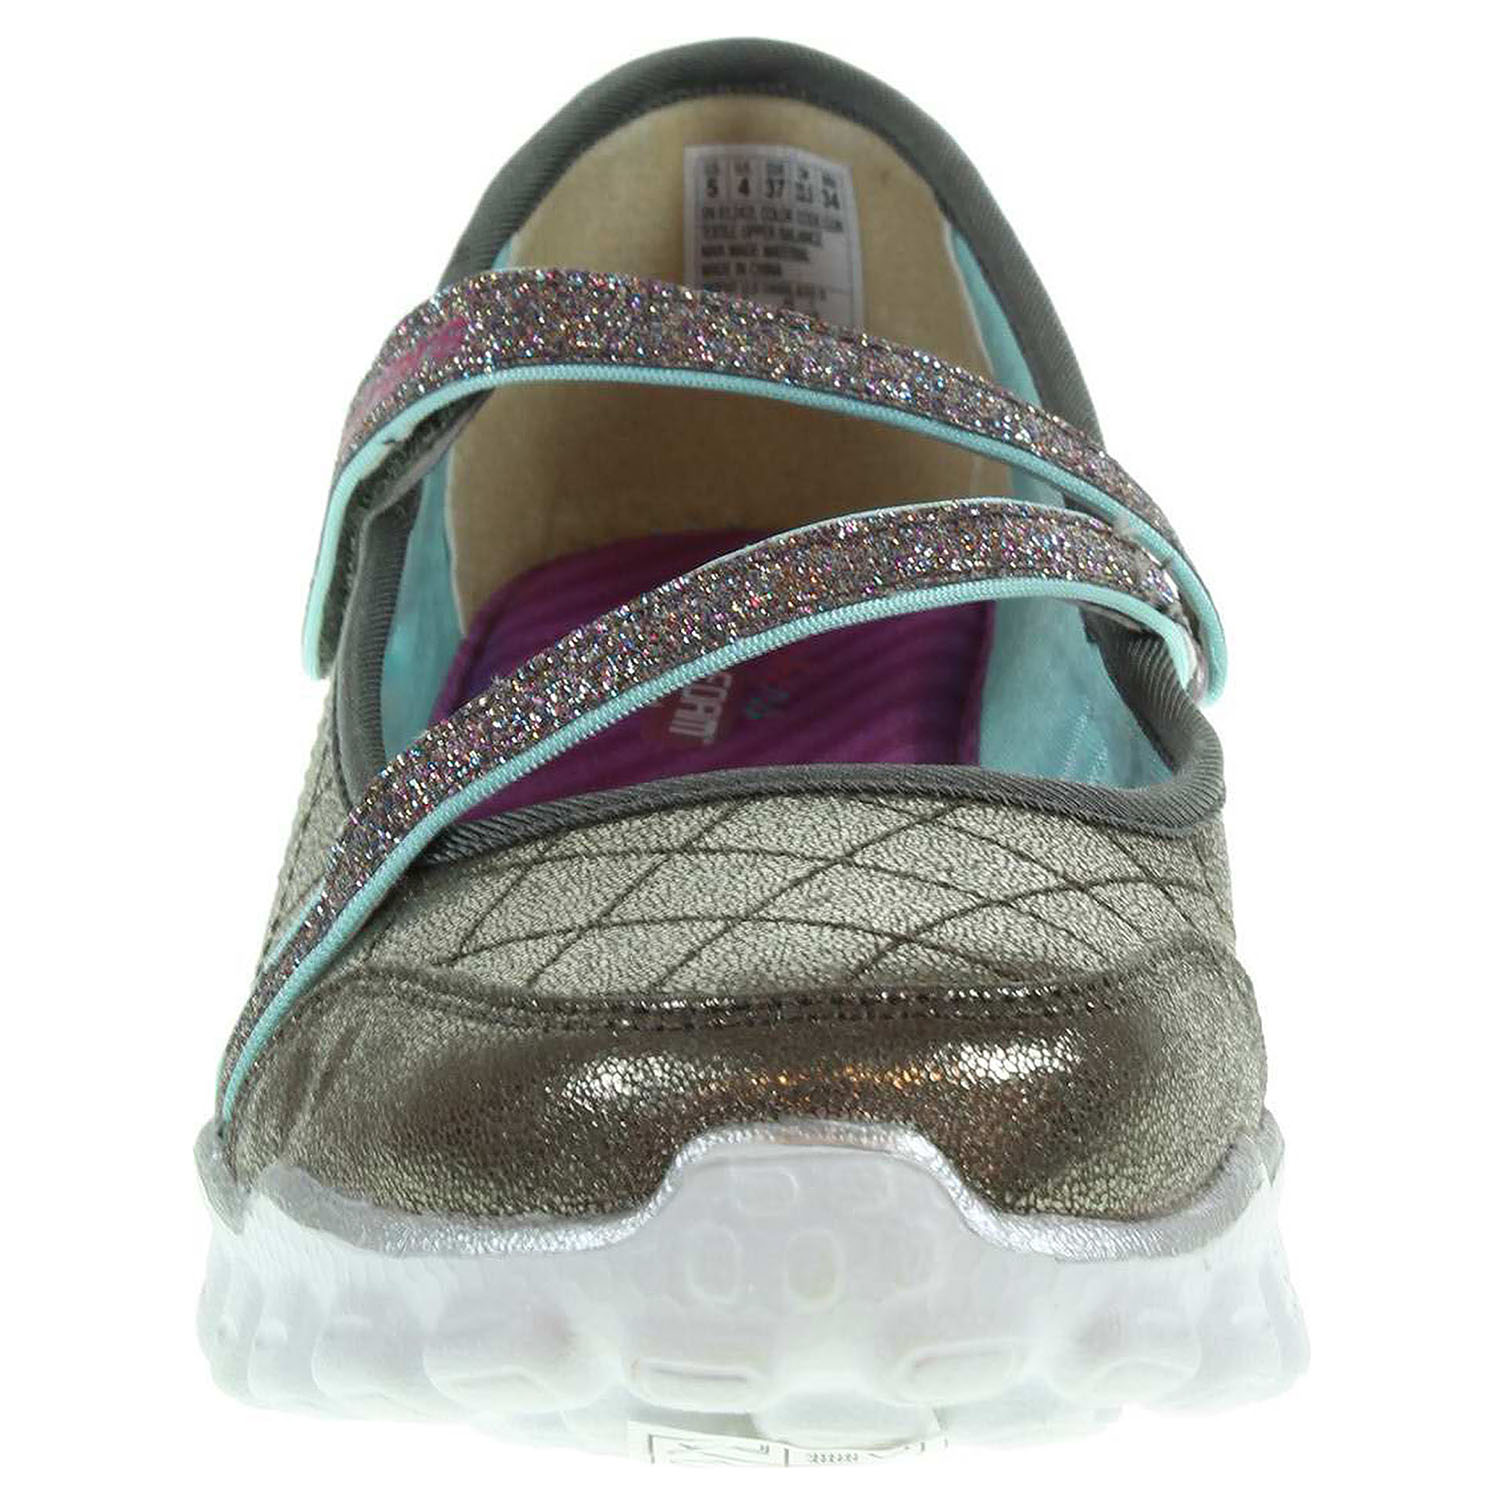 detail Skechers Skech Flex II - Shine-N-Chic gun metal